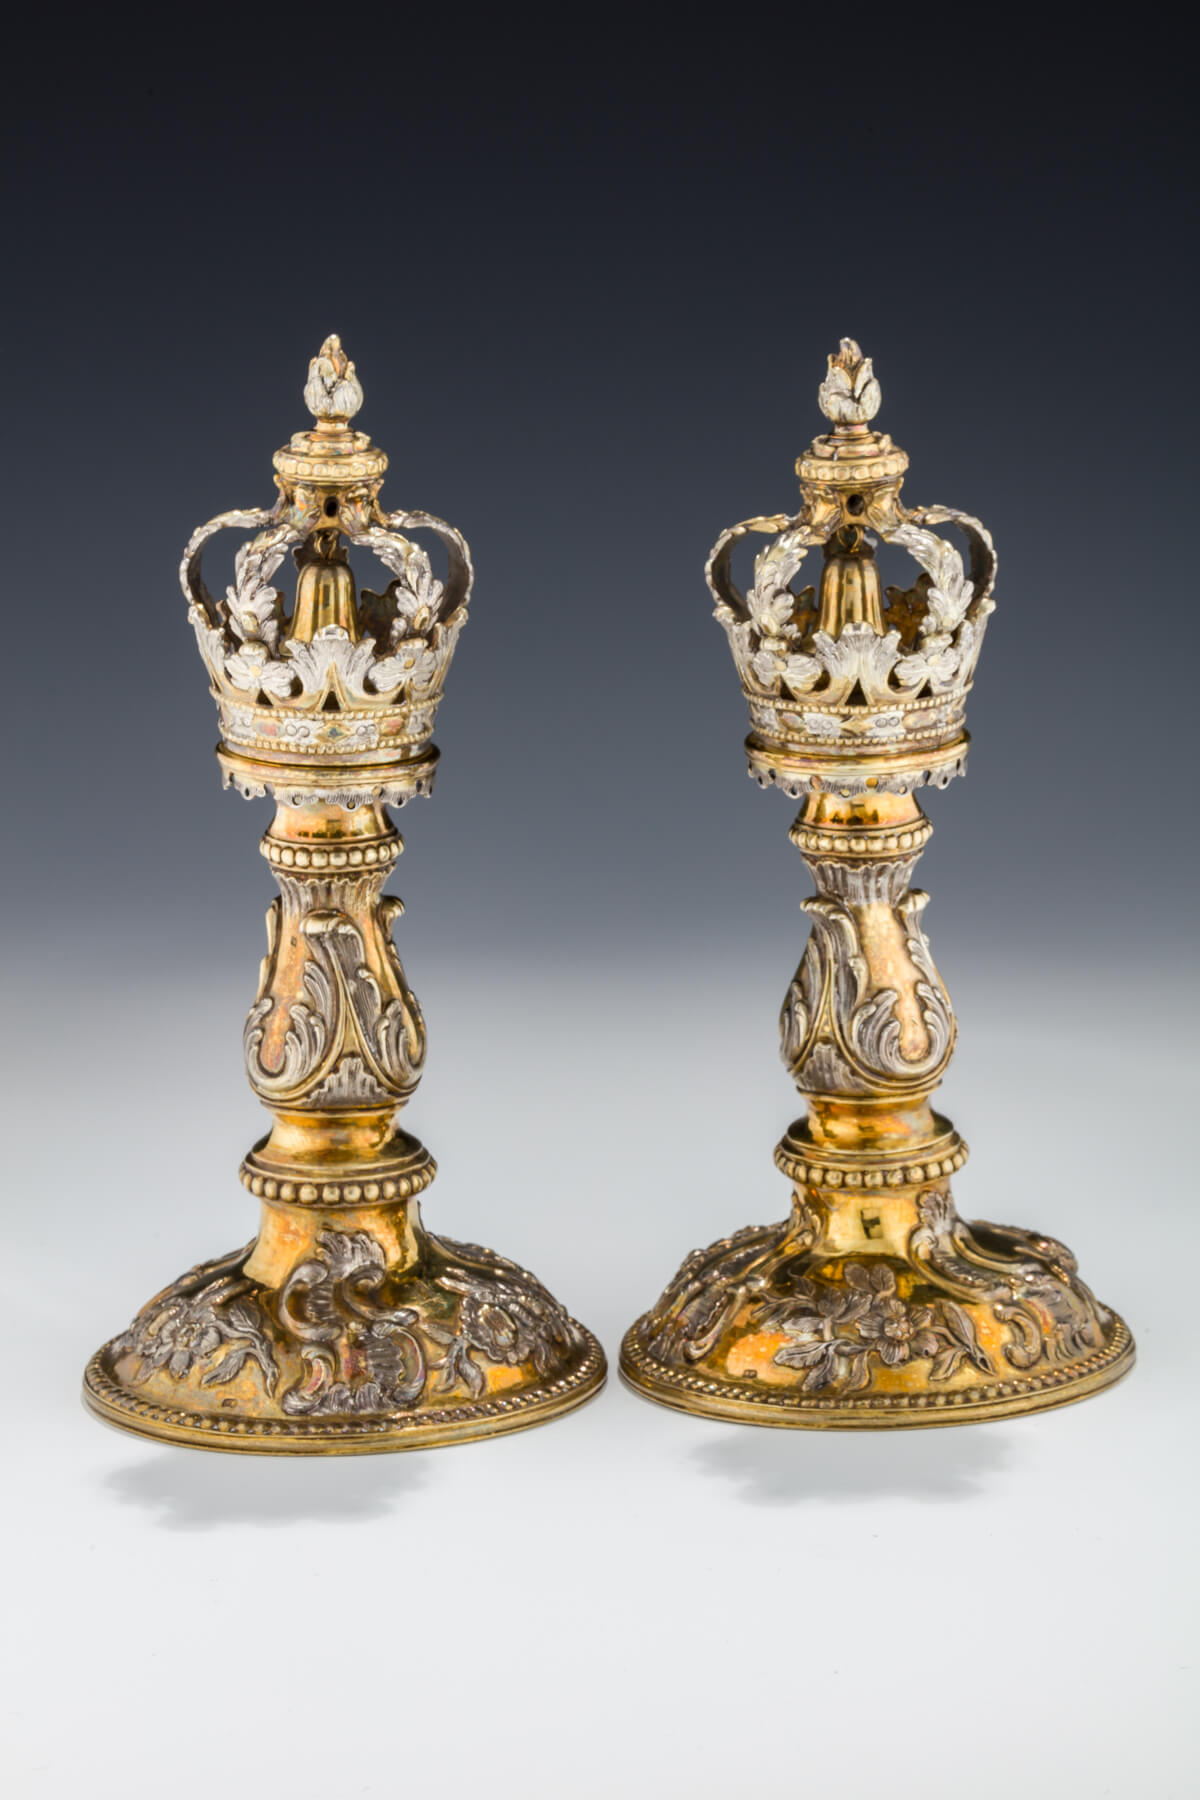 099. A Pair of Important Gilded Silver Torah Finials